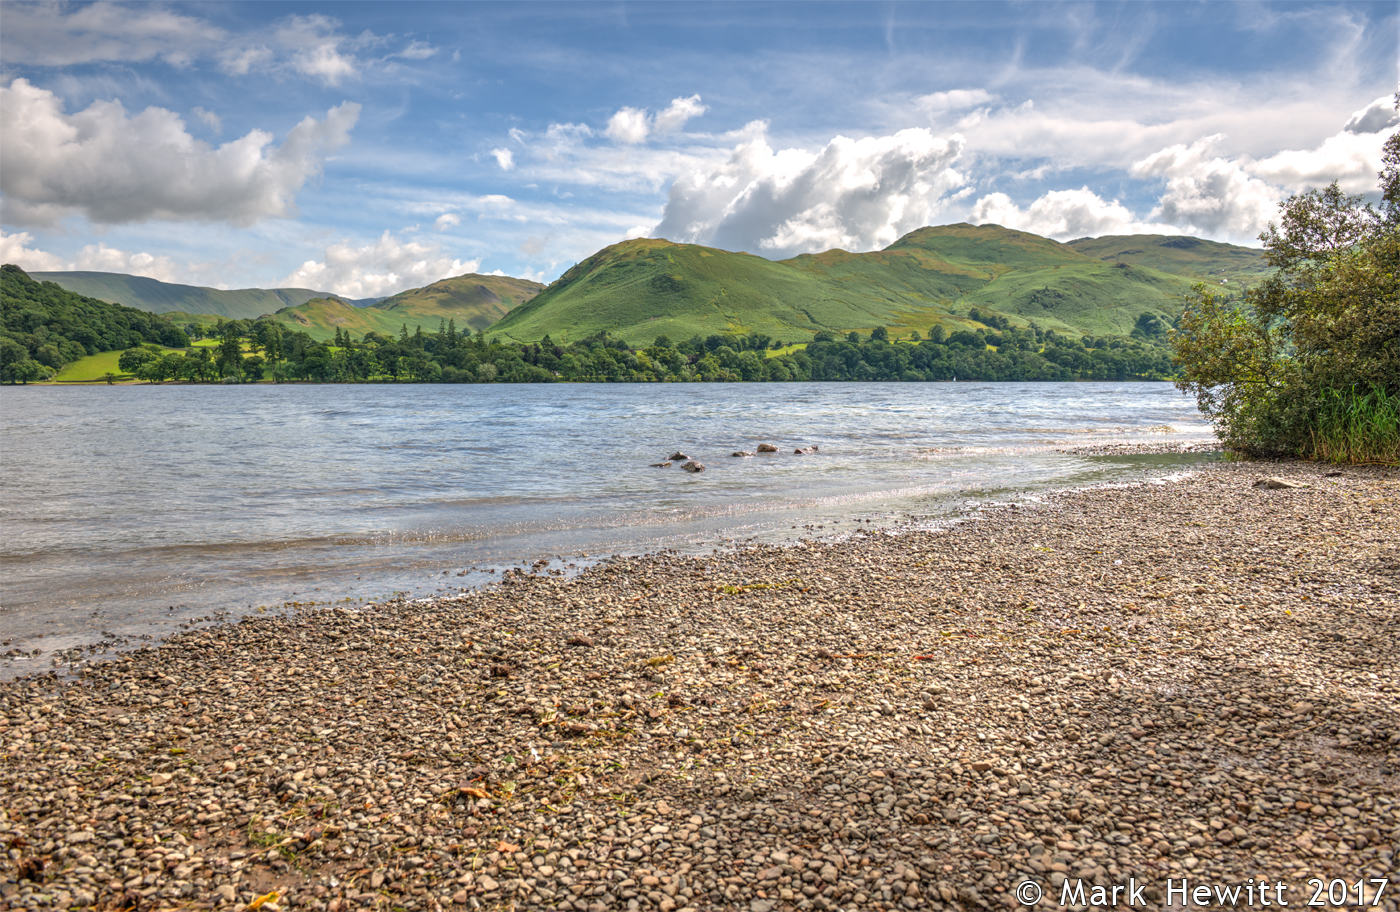 Hallin Fell & Ullswater From Gowbarrow Bay